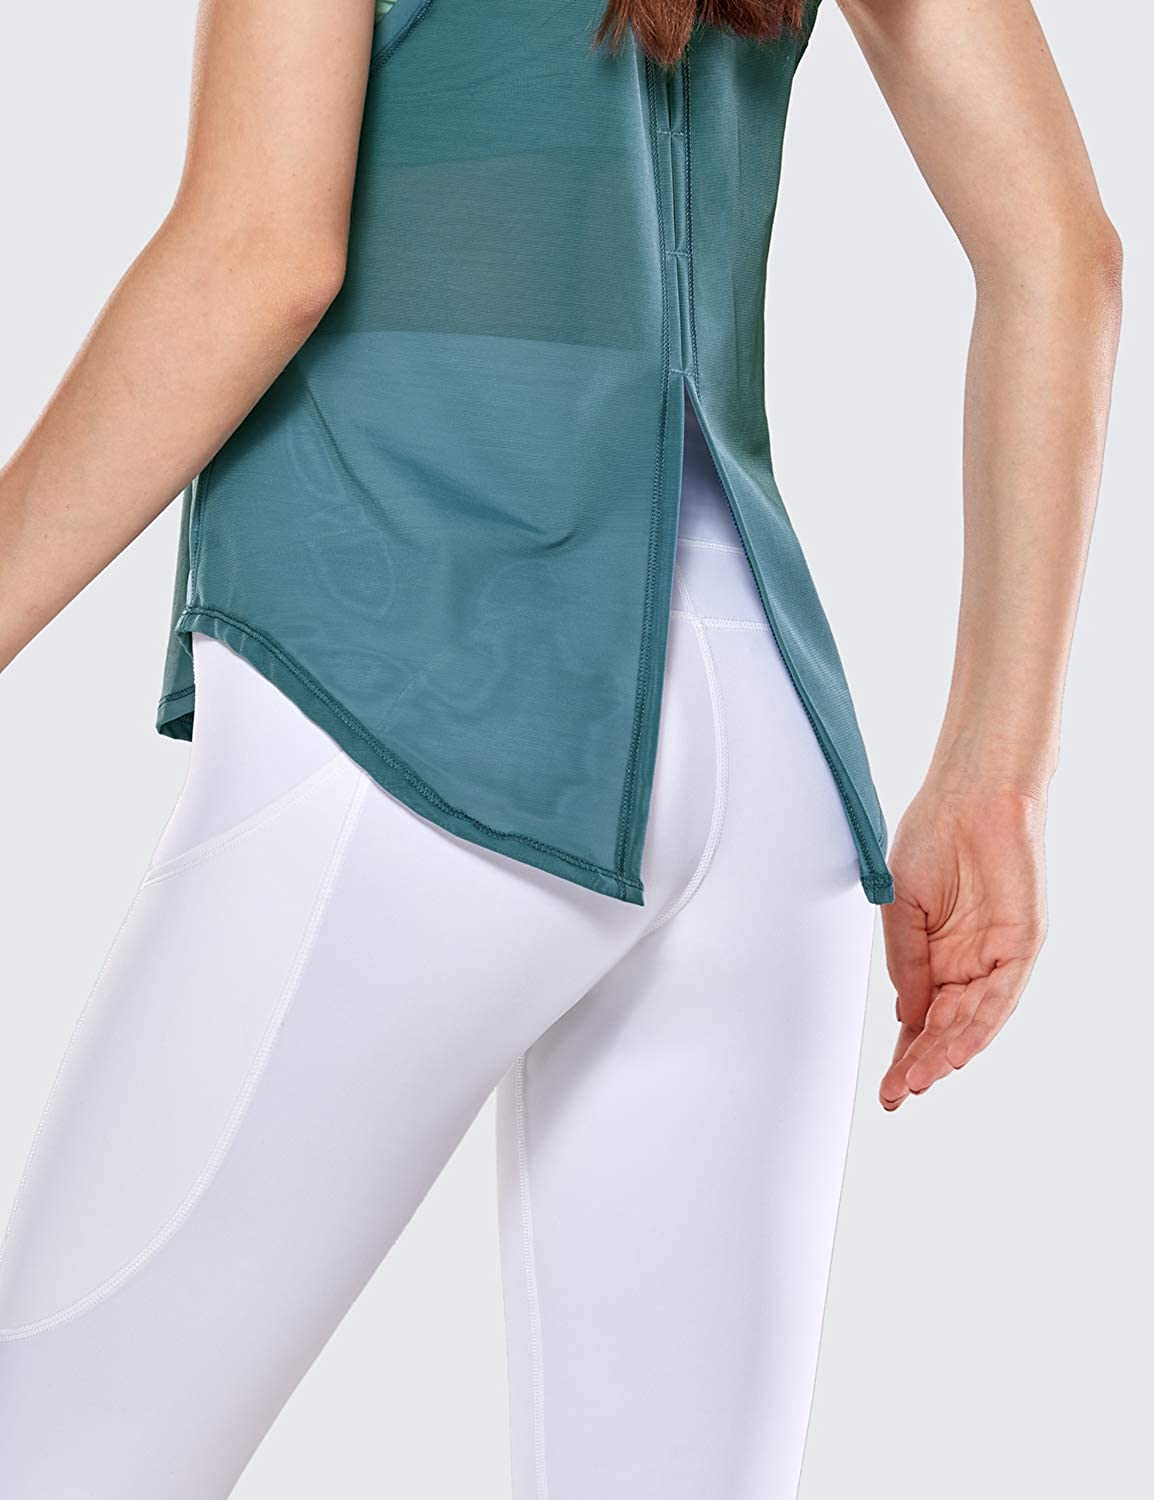 CRZ YOGA Womens Activewear Quick Dry Workout Mesh Running Tie Back Tank Top